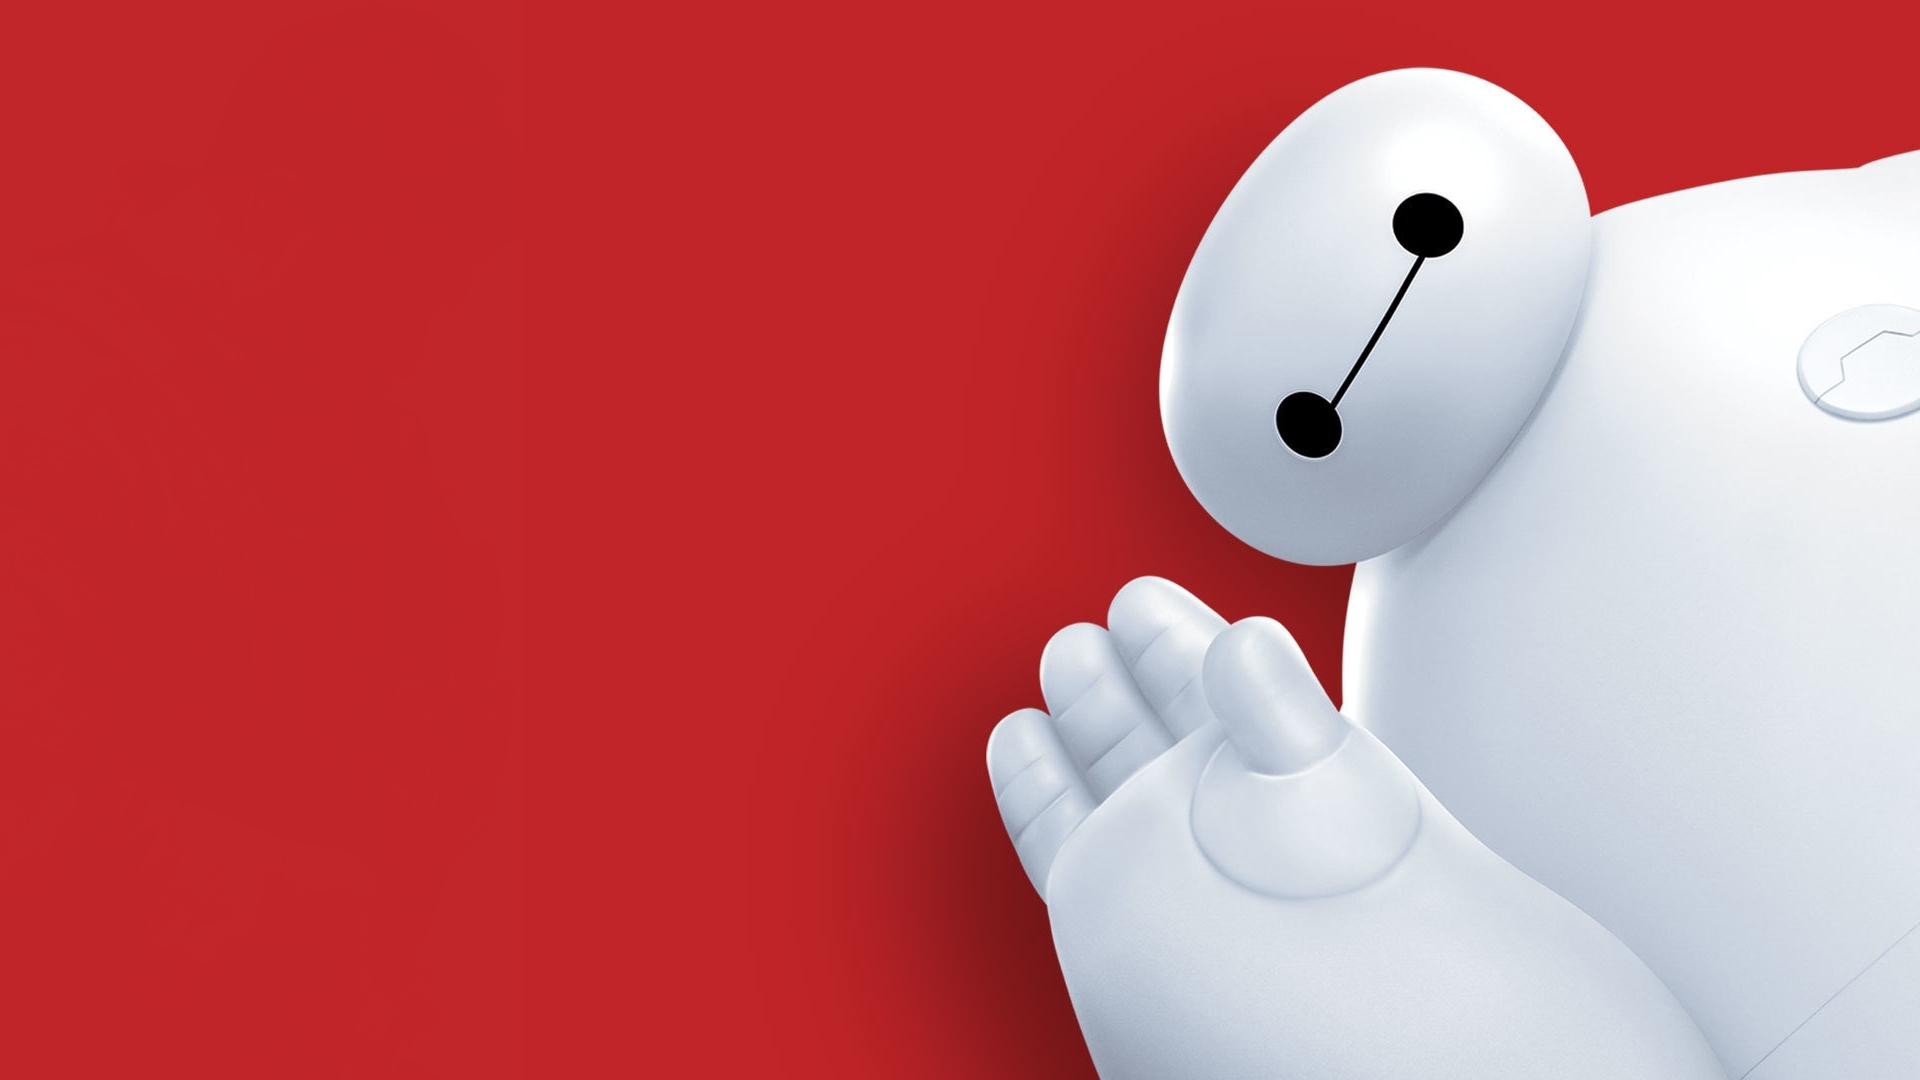 big hero 6 wallpaper 49133 1920x1080 px ~ hdwallsource